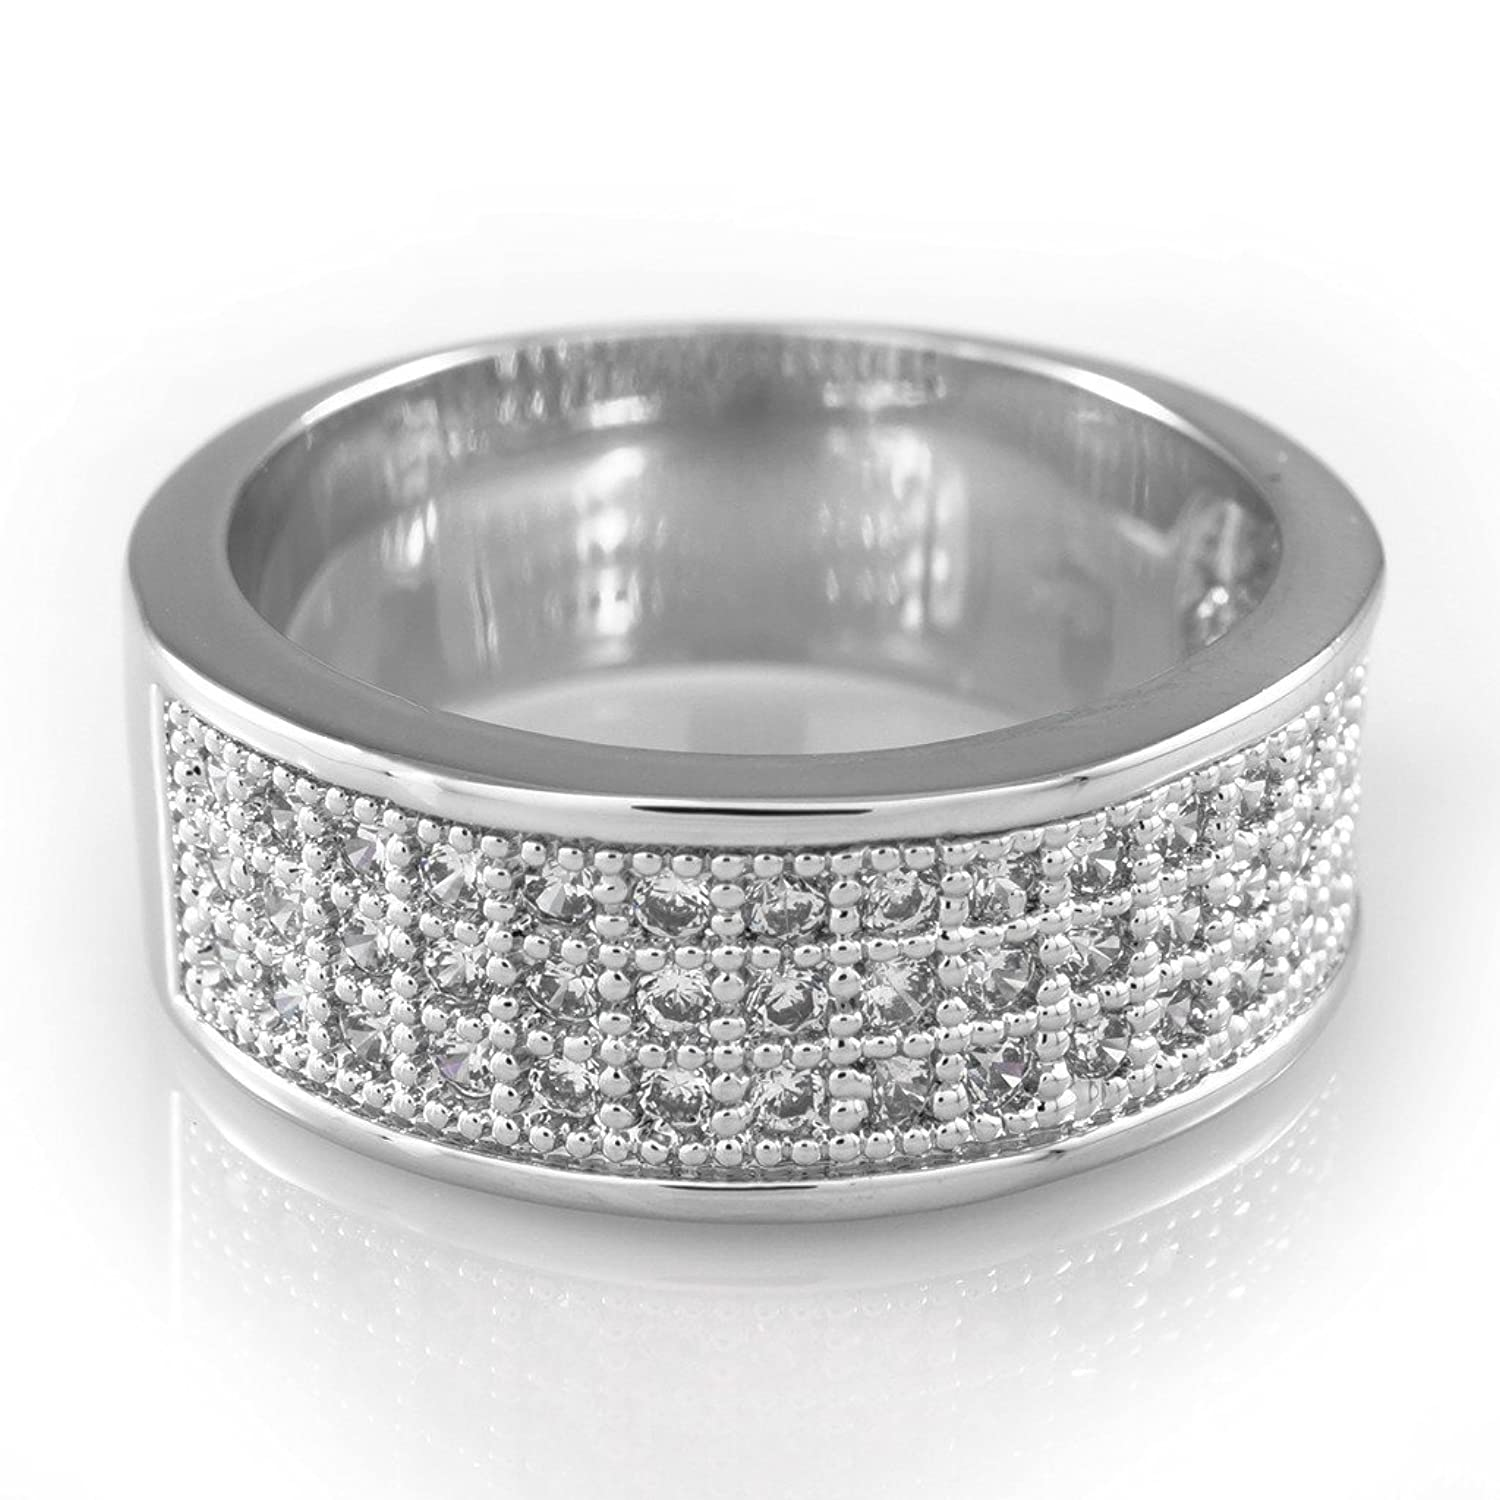 18k White Gold Plated Iced Out Engagement Cz Ring 5xeli0106201 9 99